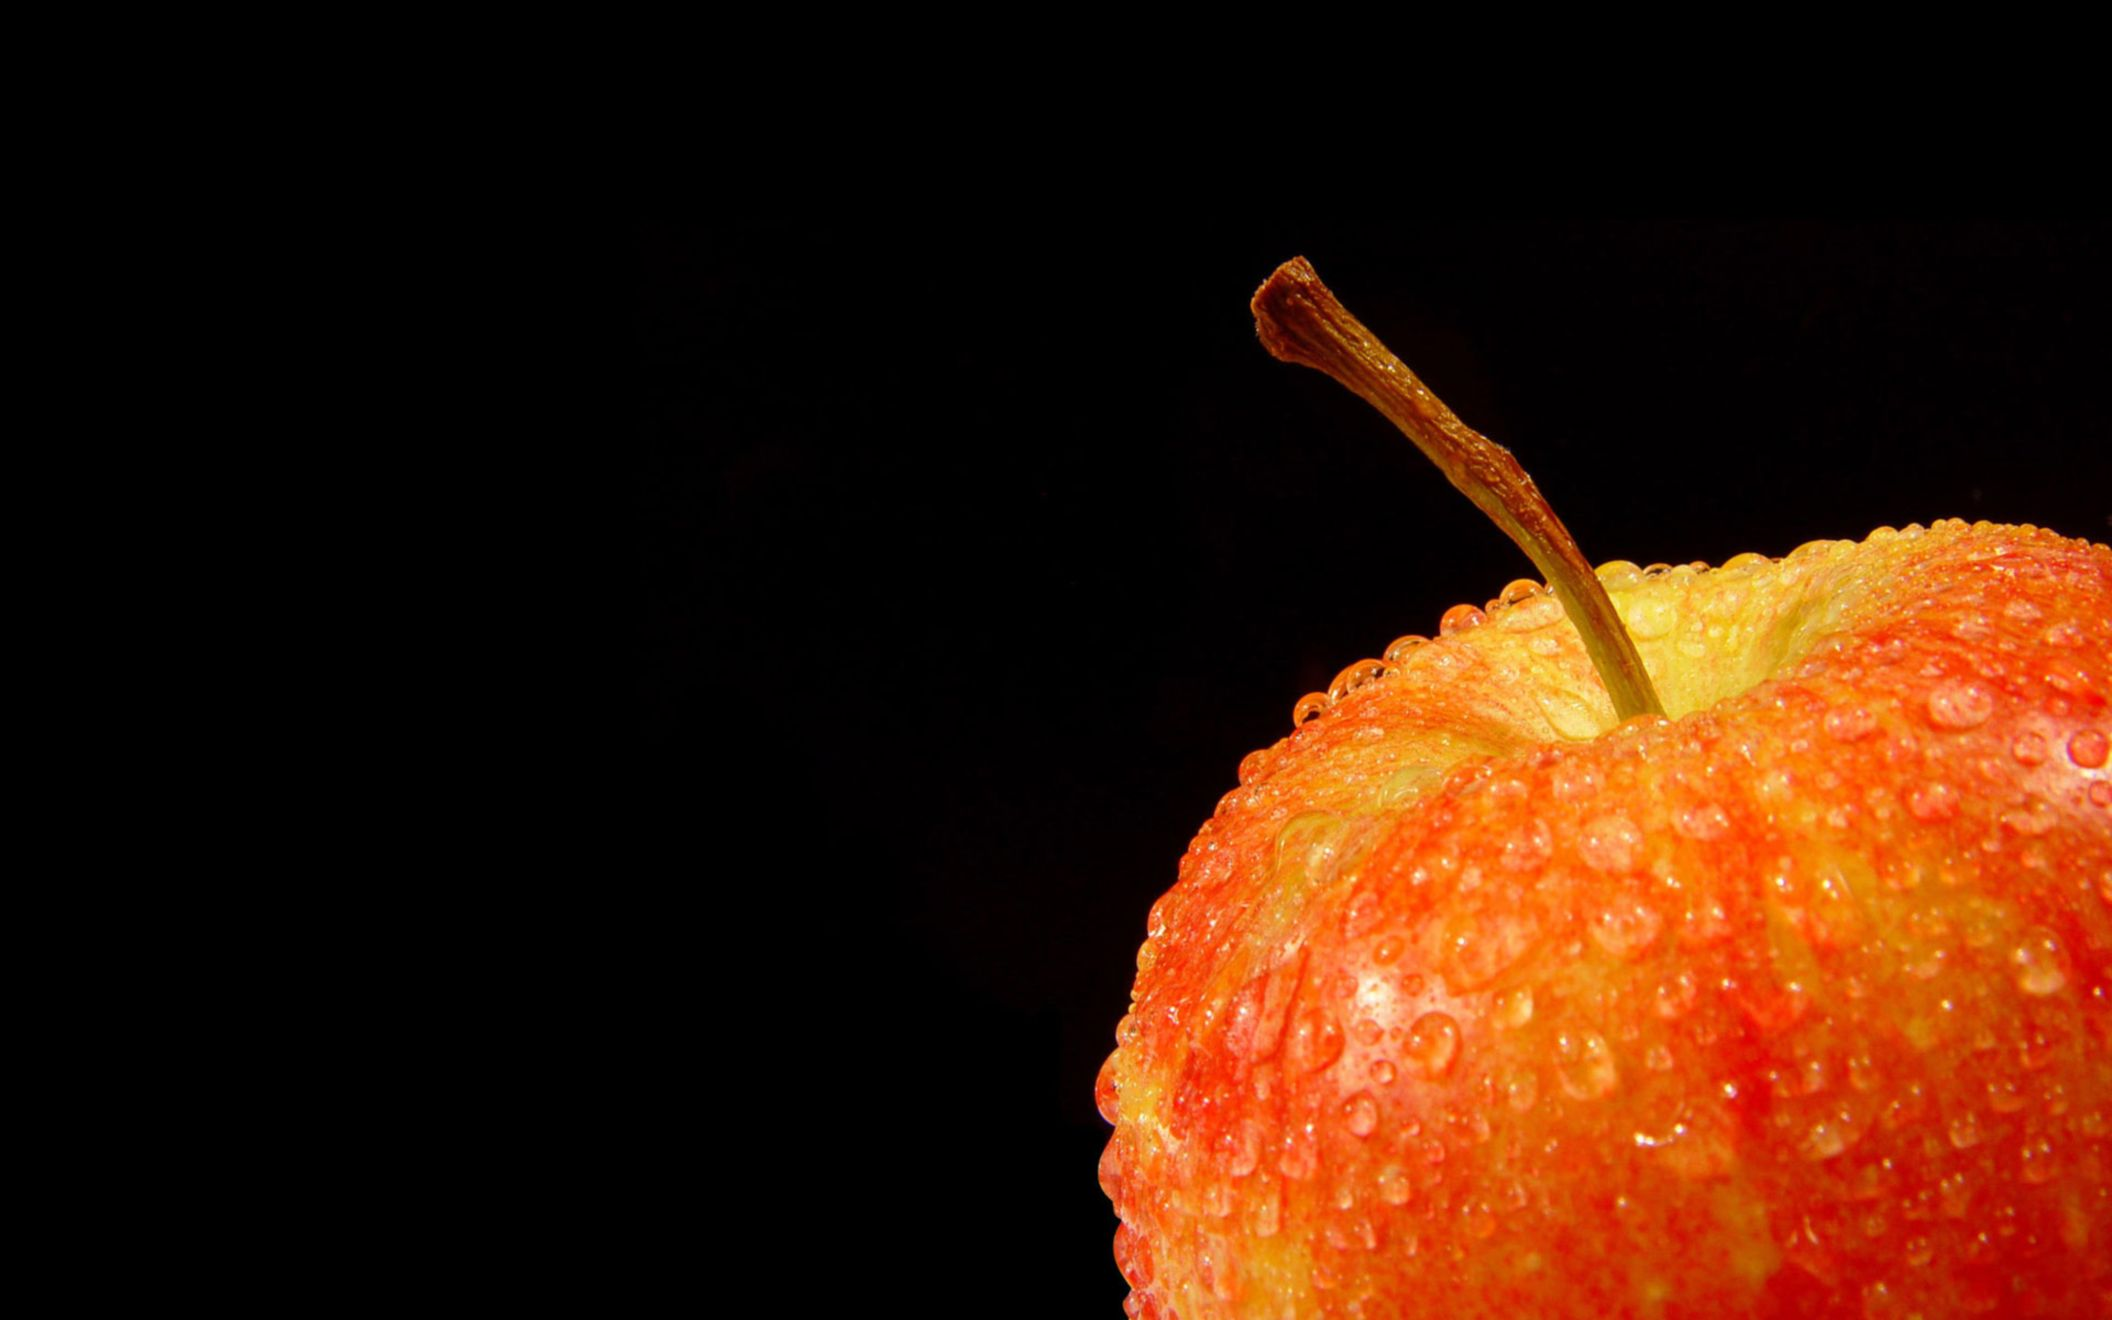 Download free HD Fresh Fruit Apple Black Background for Desktop Wallpaper, image